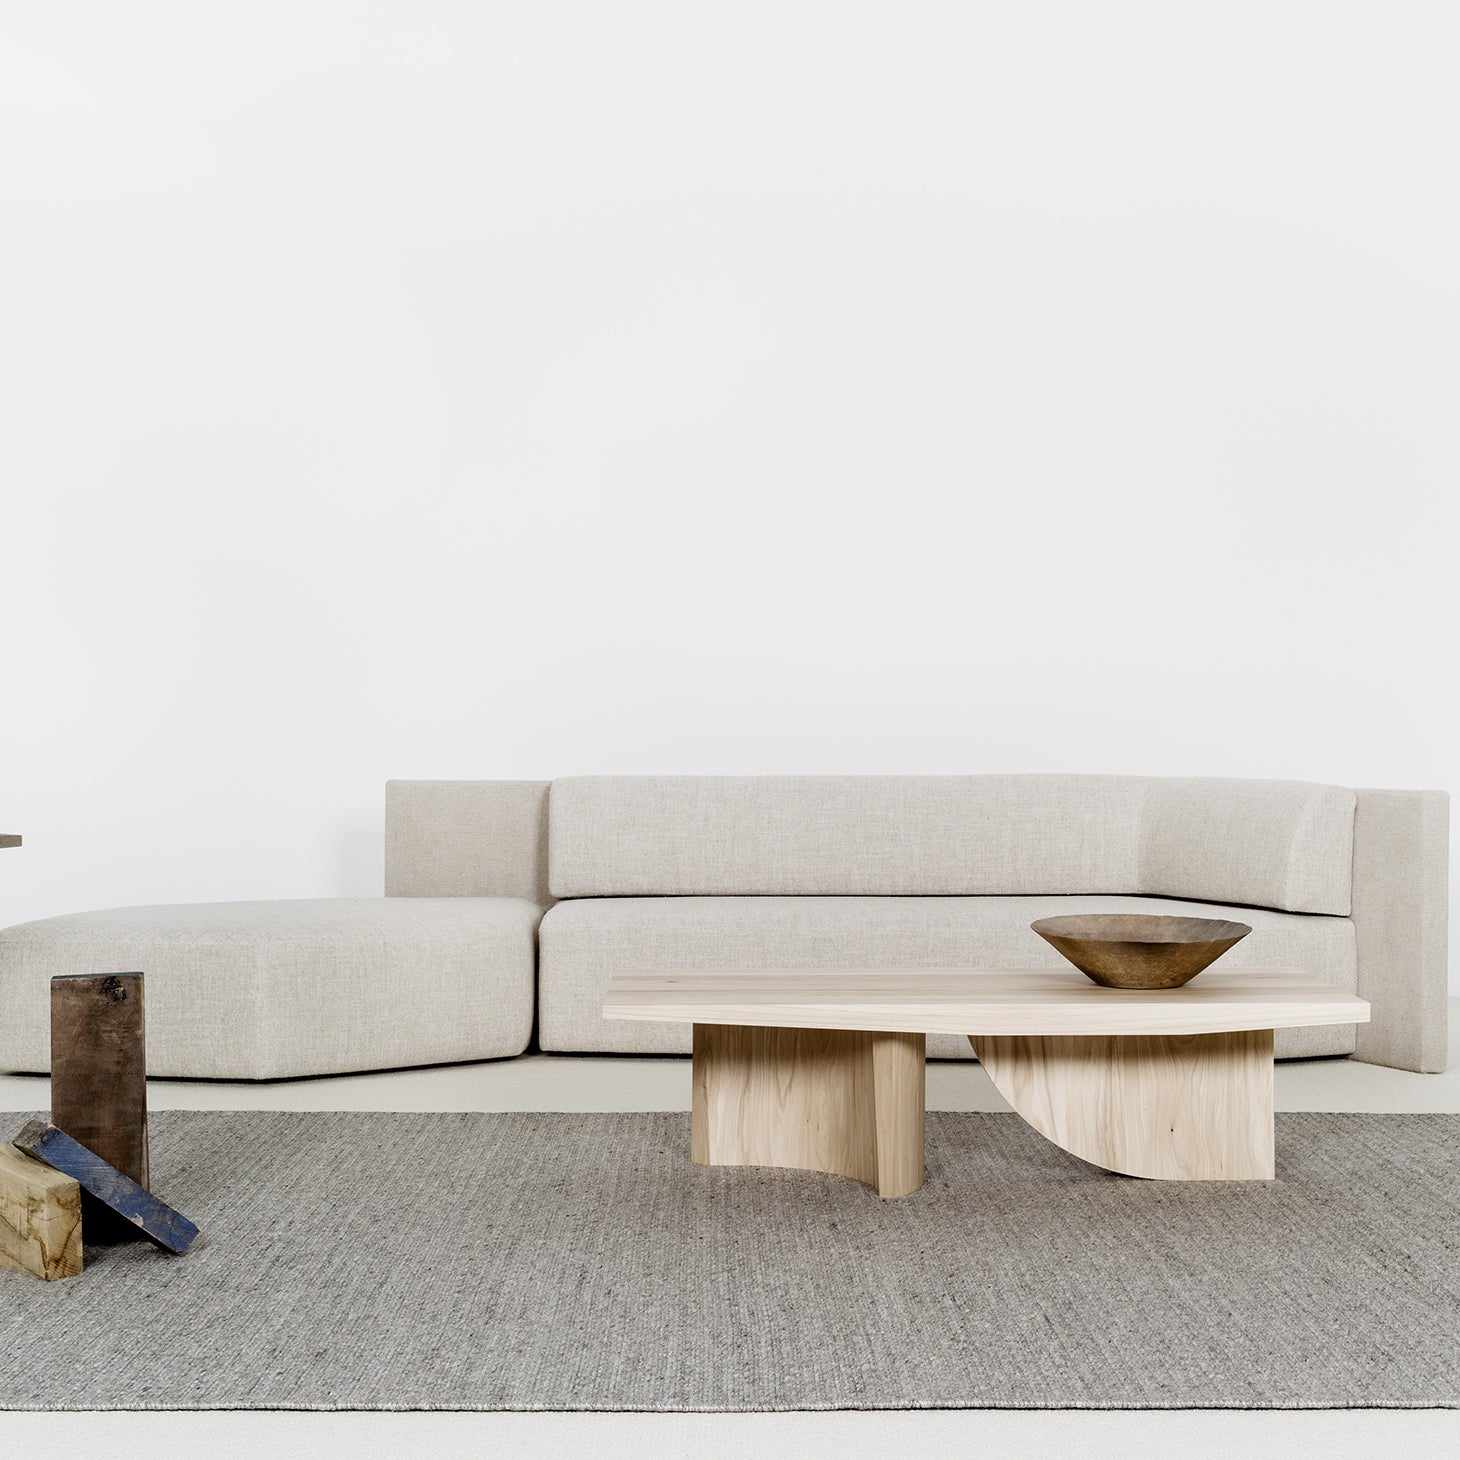 EKO Meridienne + Ottoman Seating Christophe Delcourt Designer Furniture Sku: 008-240-10193